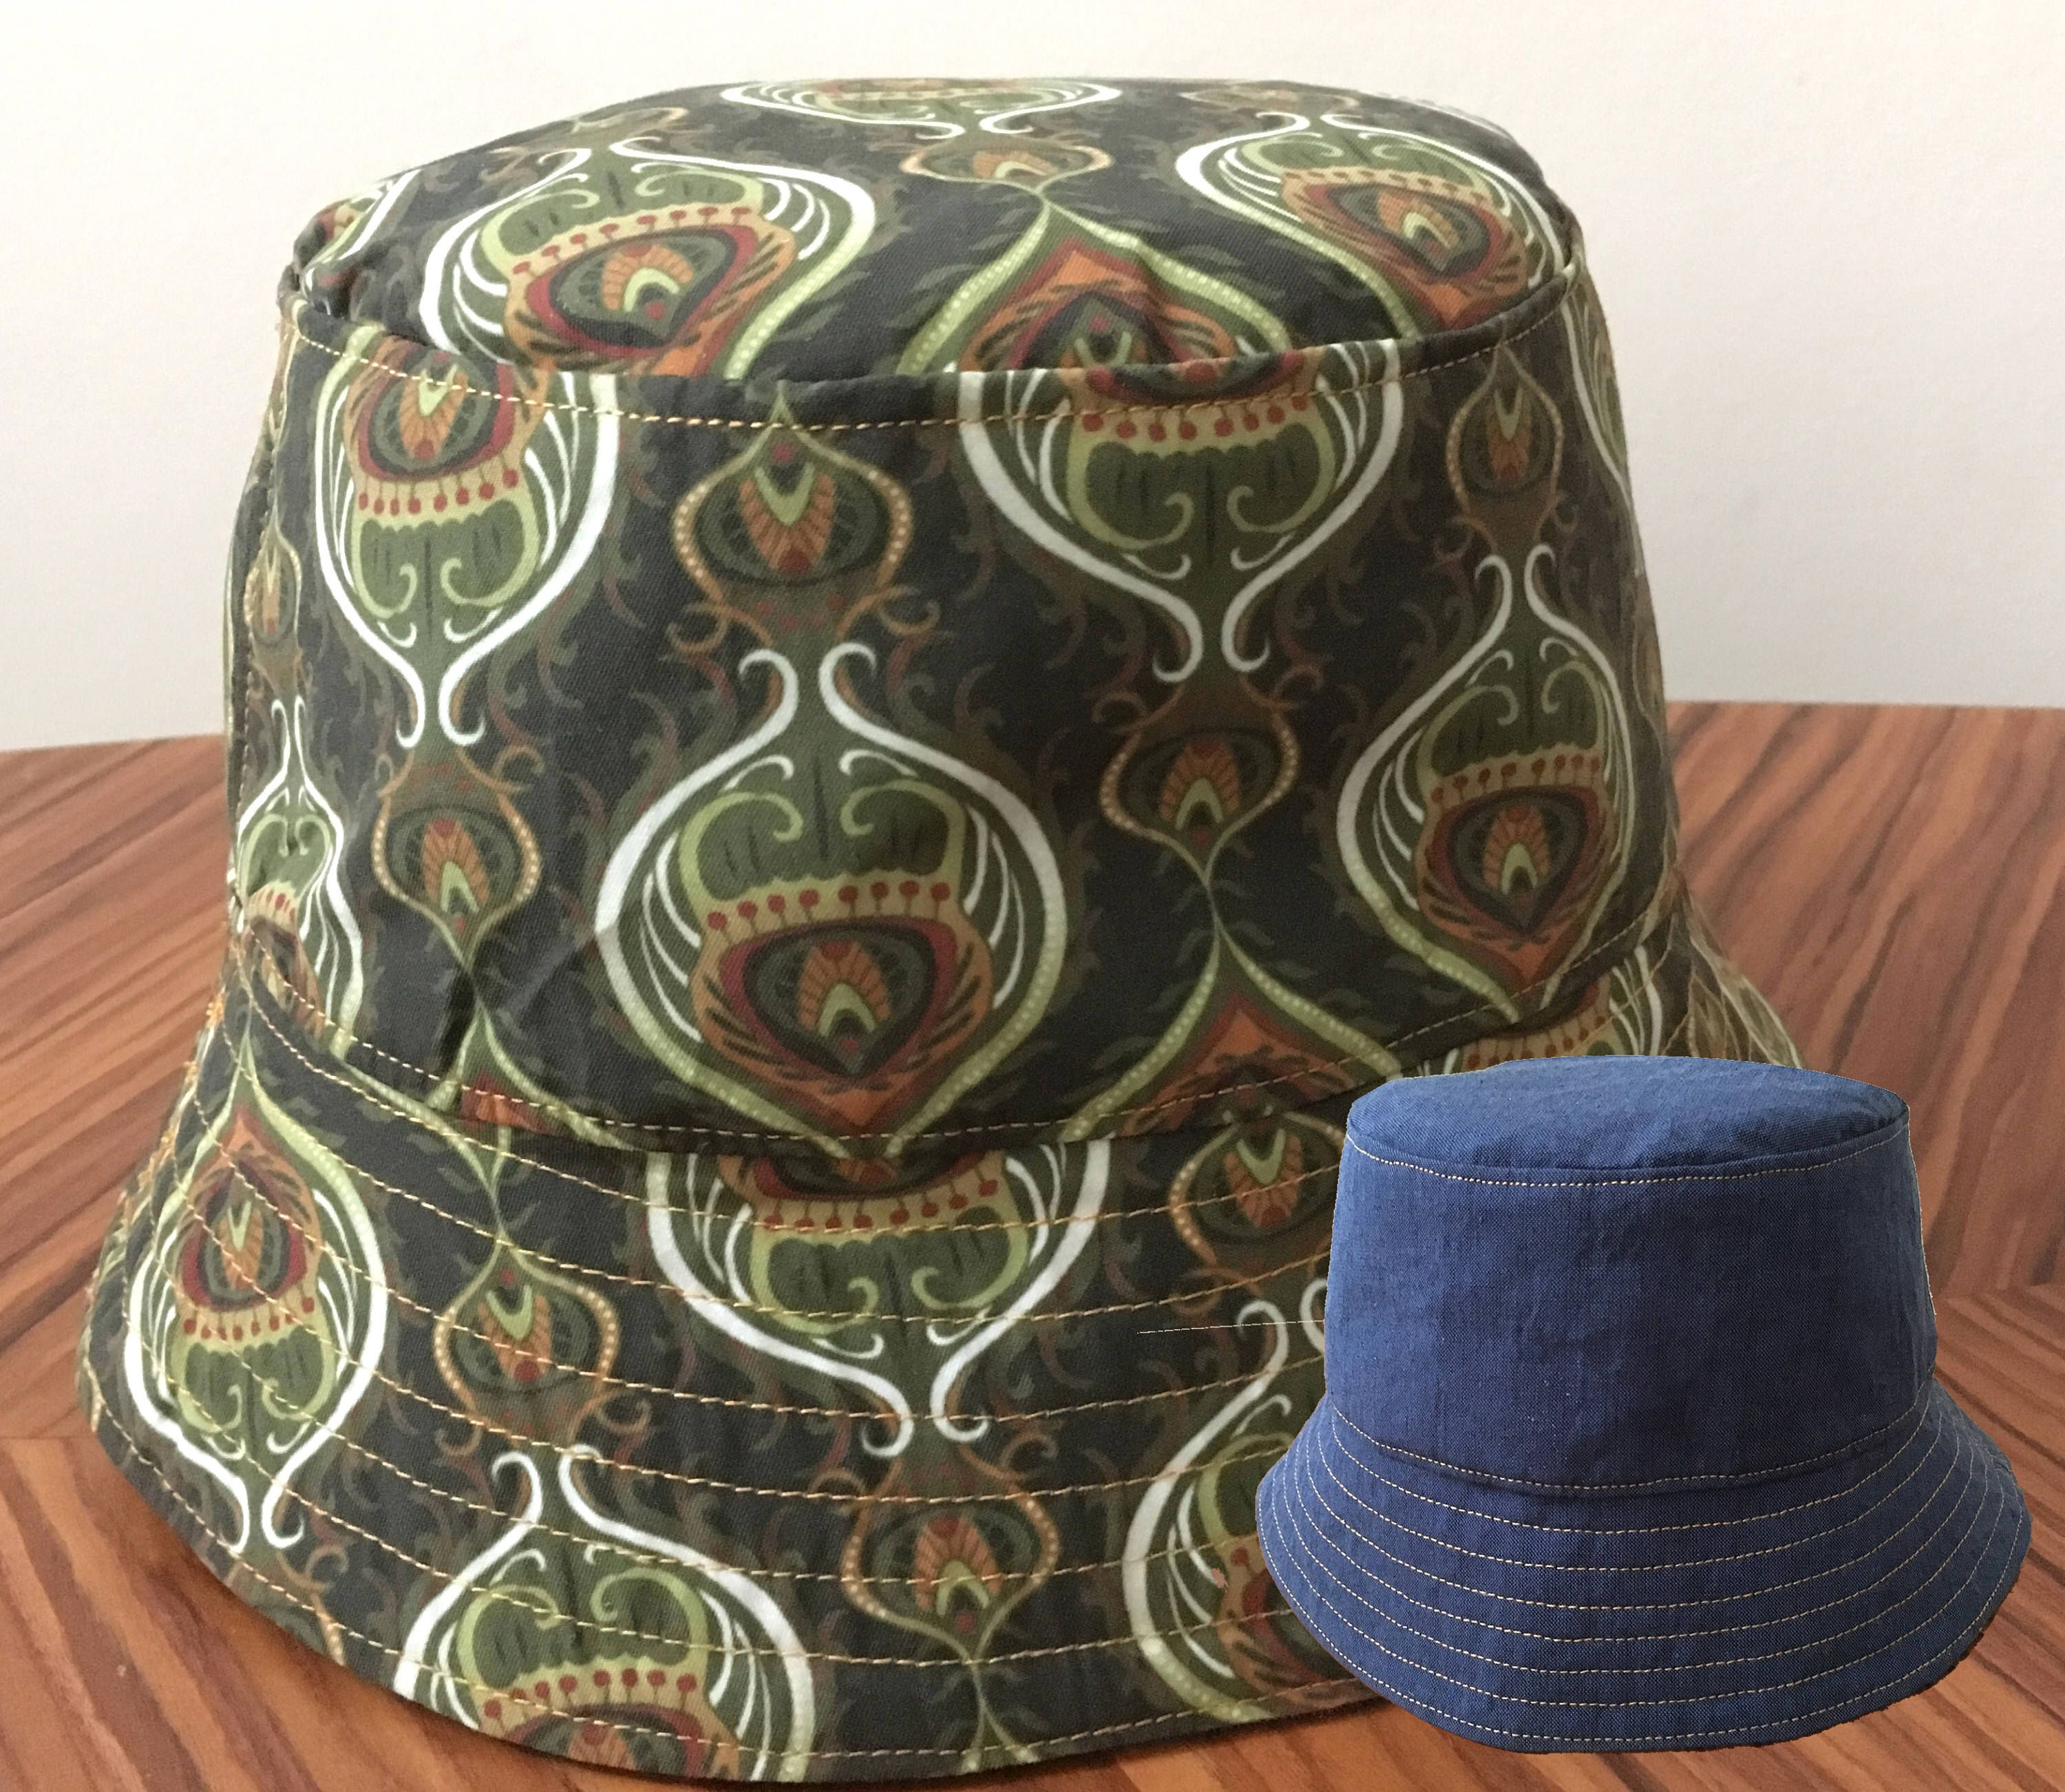 32d7eb5d3f2 Reversible Bucket Hat in a Khaki Olive Green Paisley Style Print ...